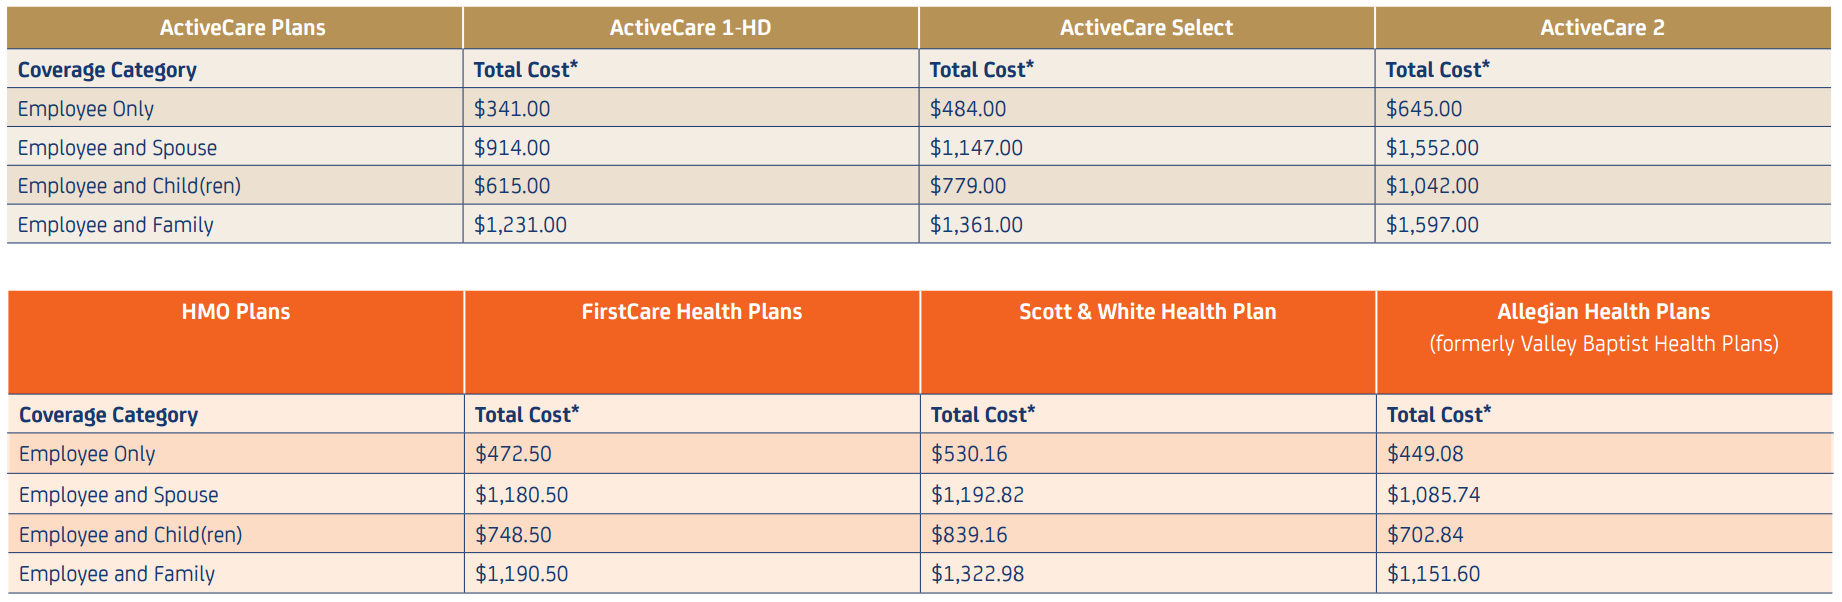 trs-activecare-rates-for-2016-17